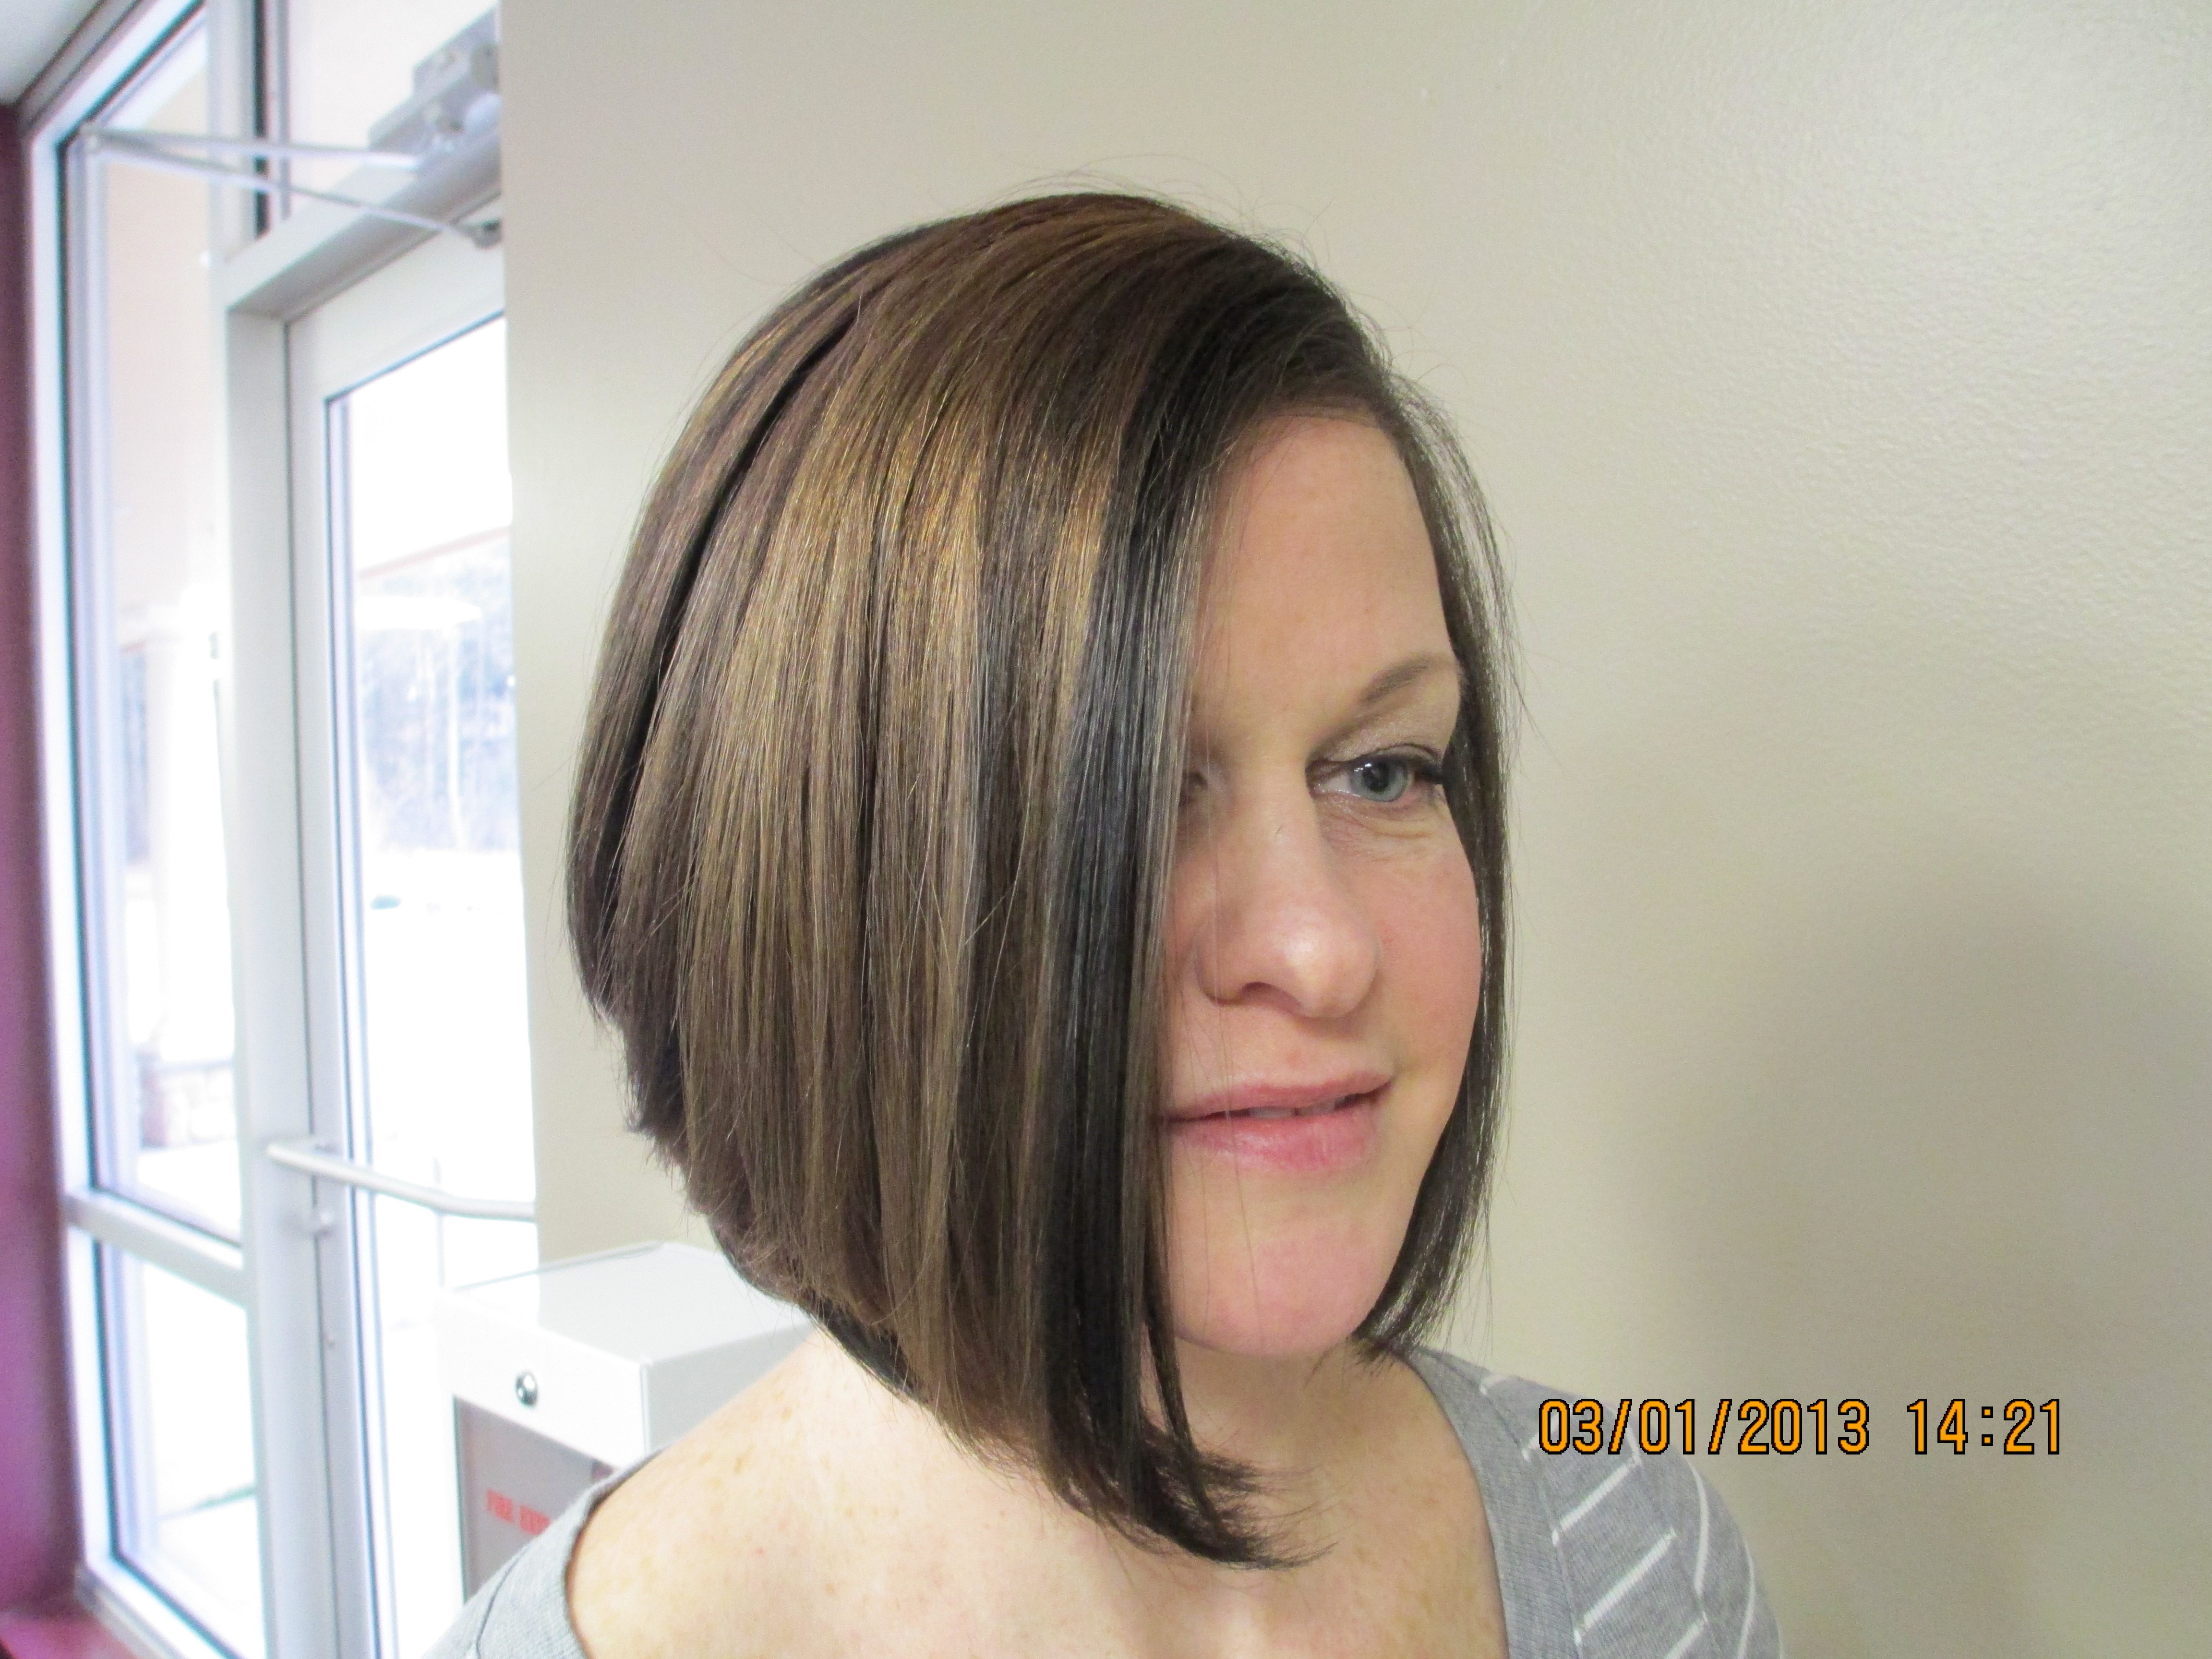 Inverted Bob And Caramel Highlights By Bonnie Paynter La Bella Vita Salon And Day Spa Dover De Short Hair Styles Beauty Hair Styles